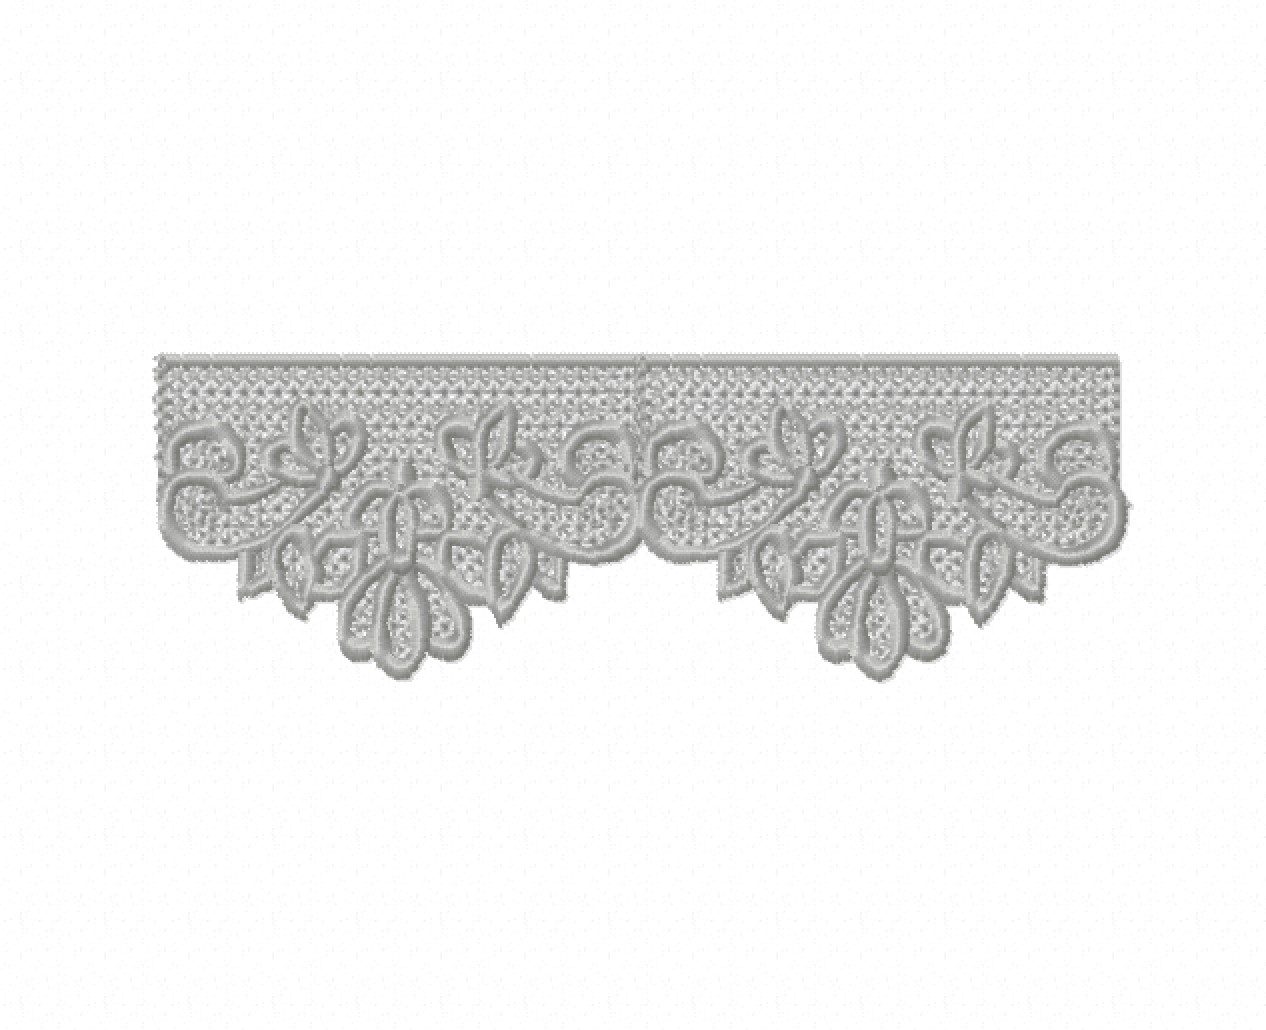 Freestanding Lace Trim & Medallion-7